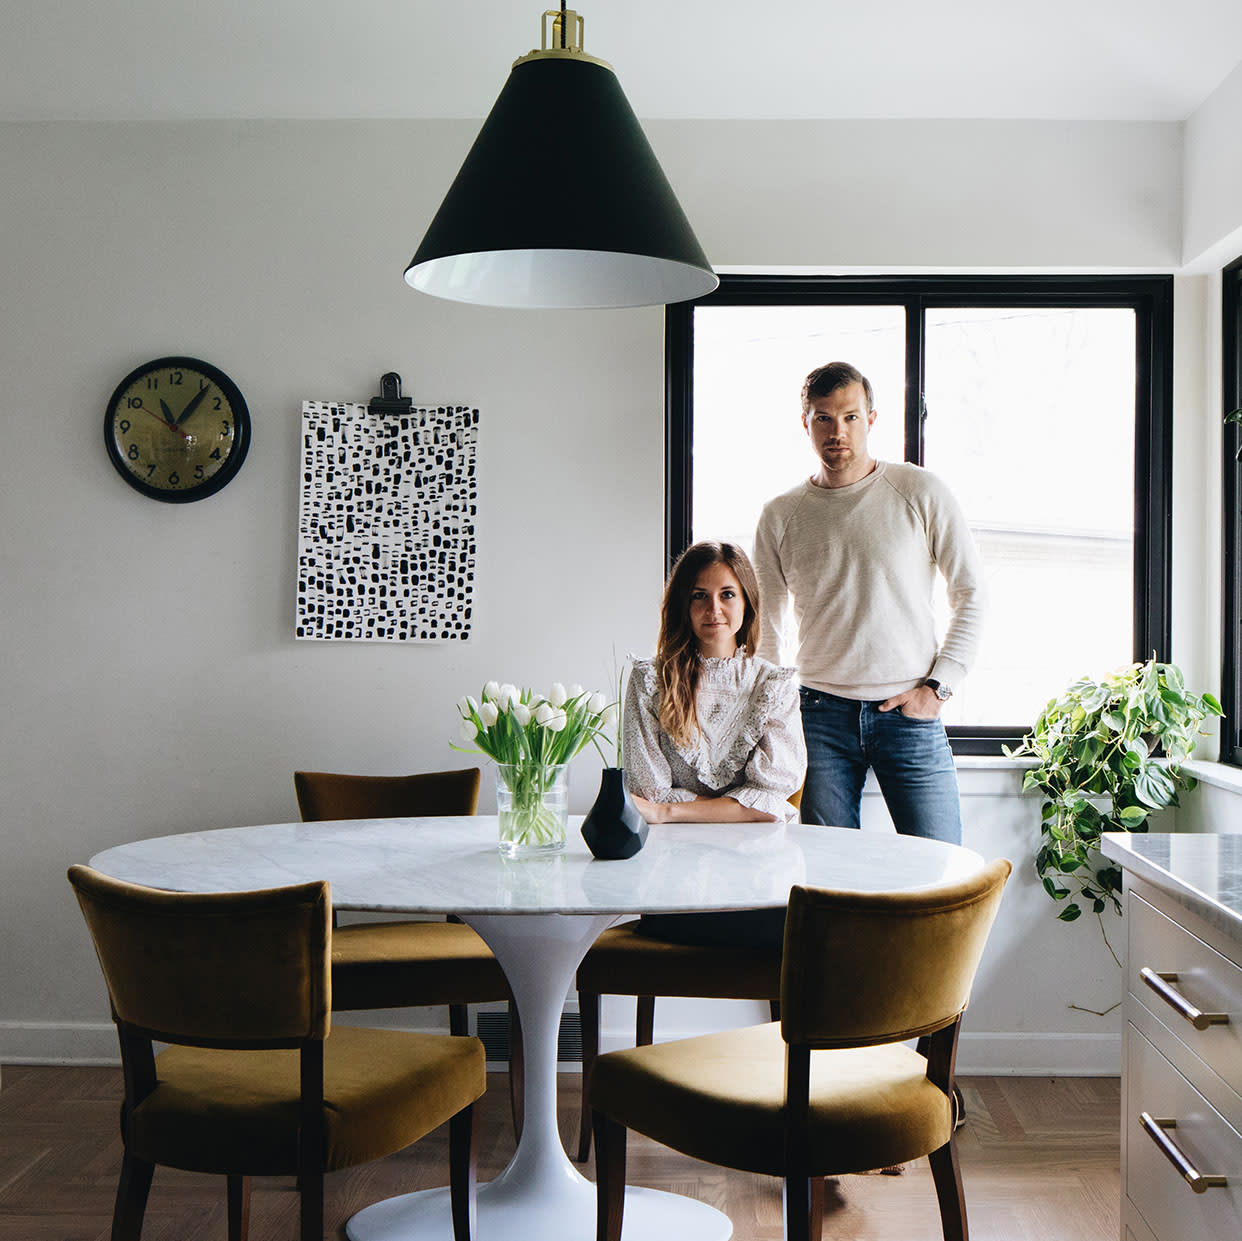 man and woman at kitchen table